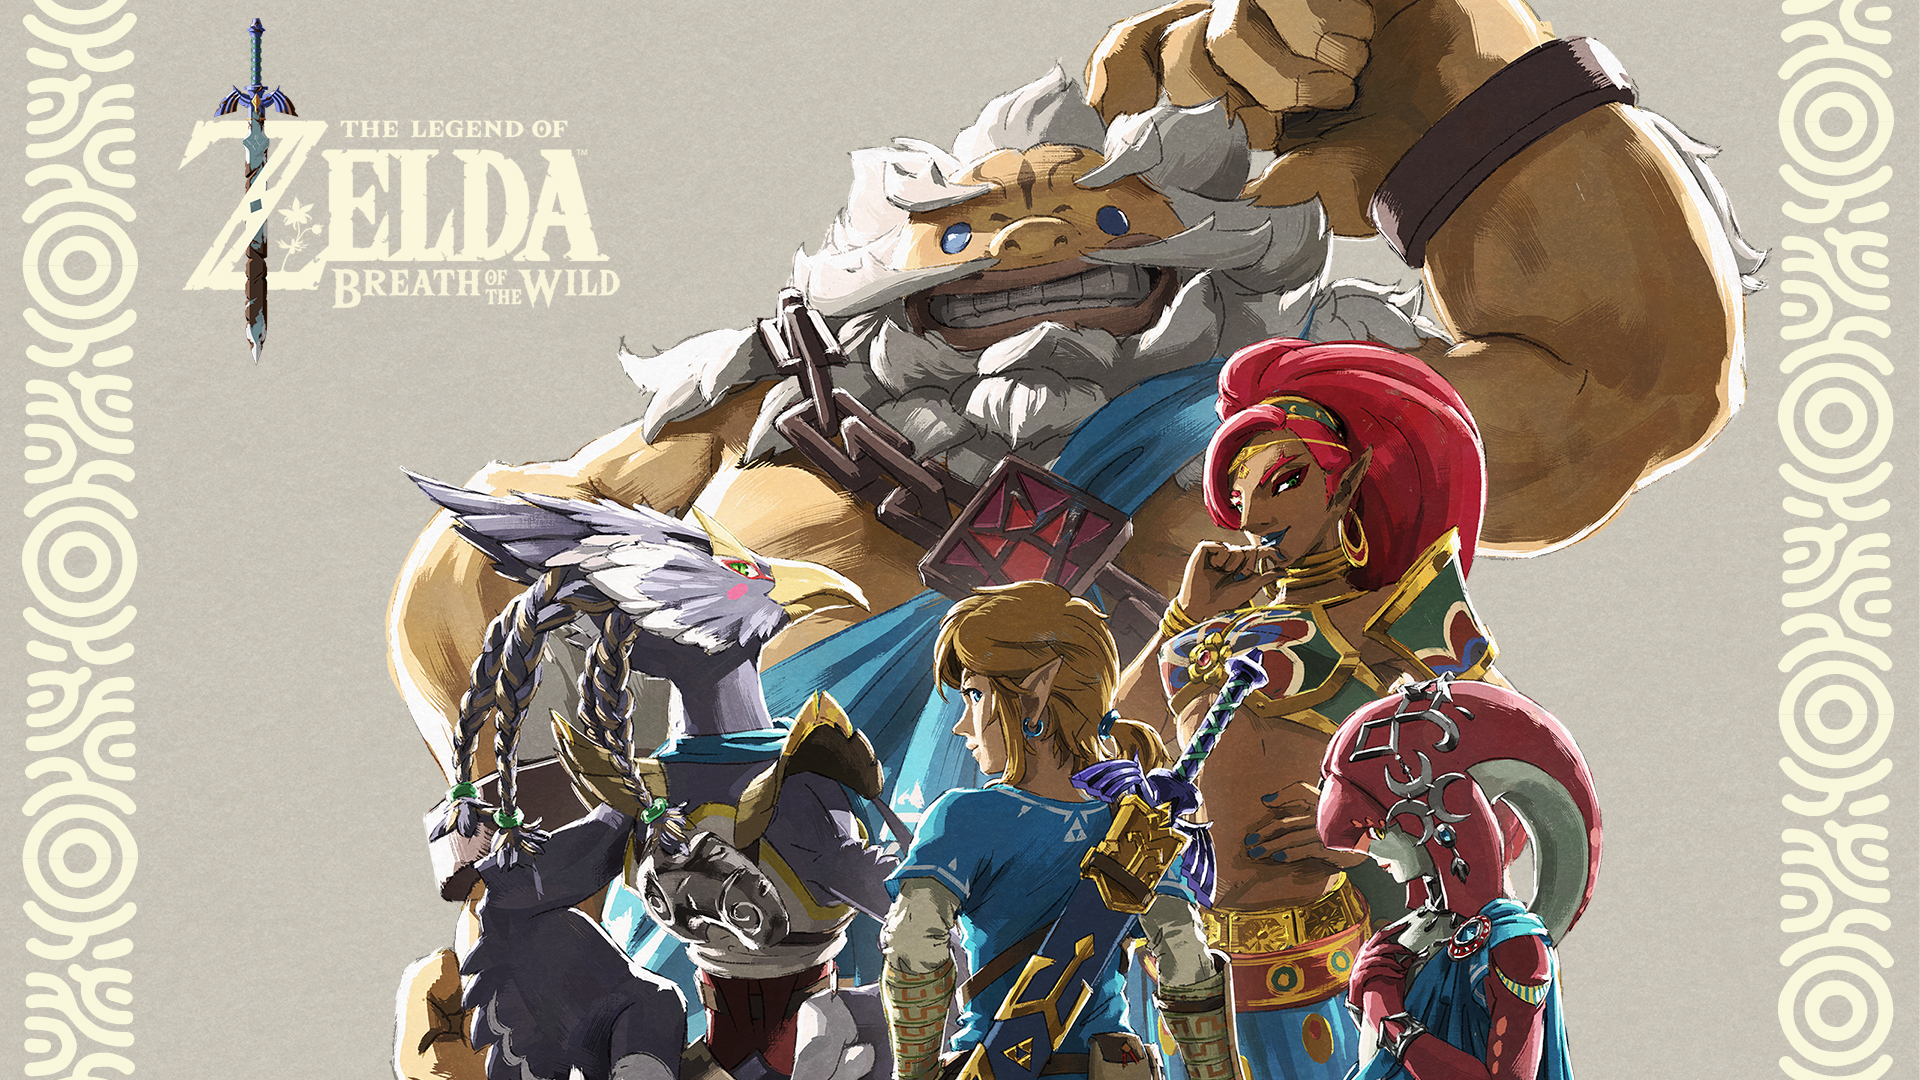 Legend of Zelda Breath of the Wild wallpaper.jpg